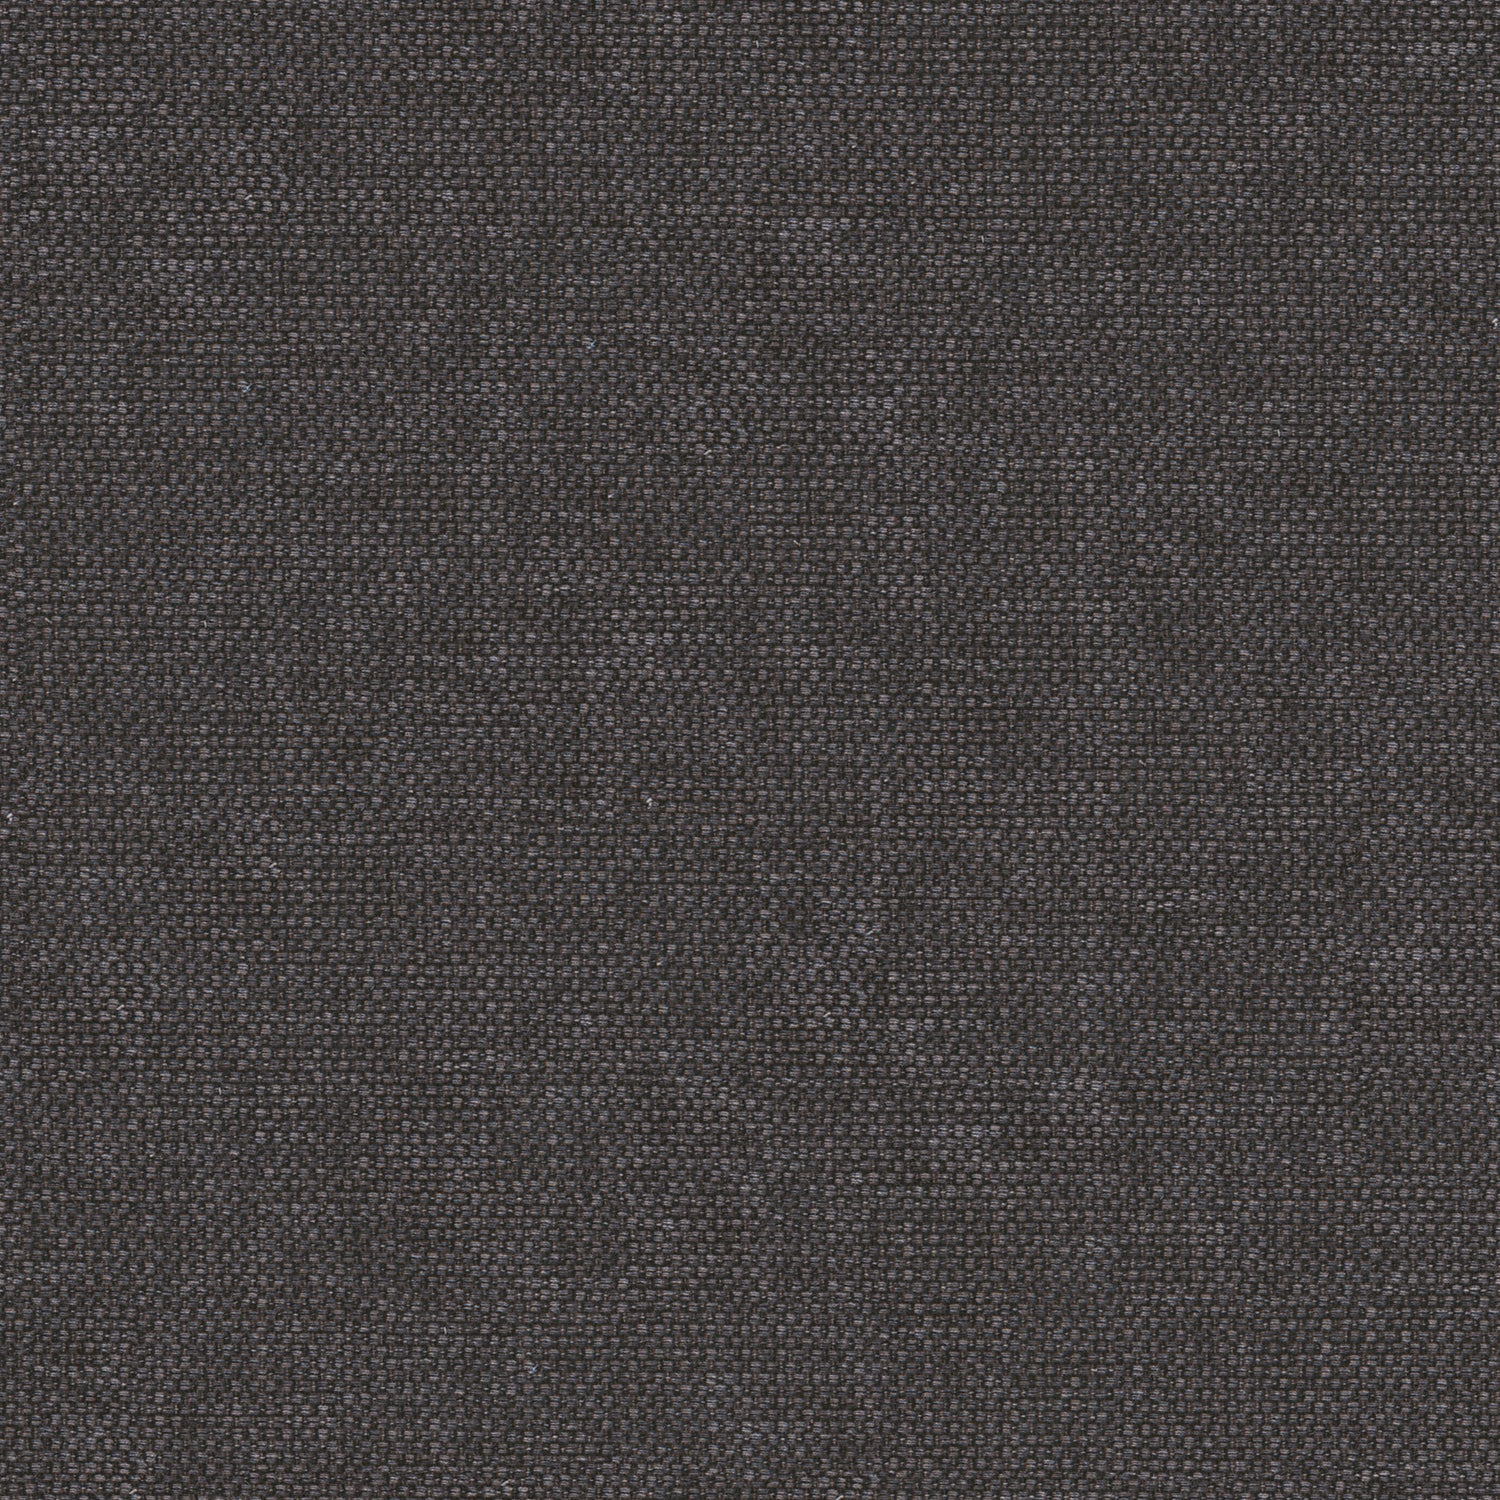 Deep violet plain cotton fabric for domestic and contract curtains or upholstery with a stain resistant finish